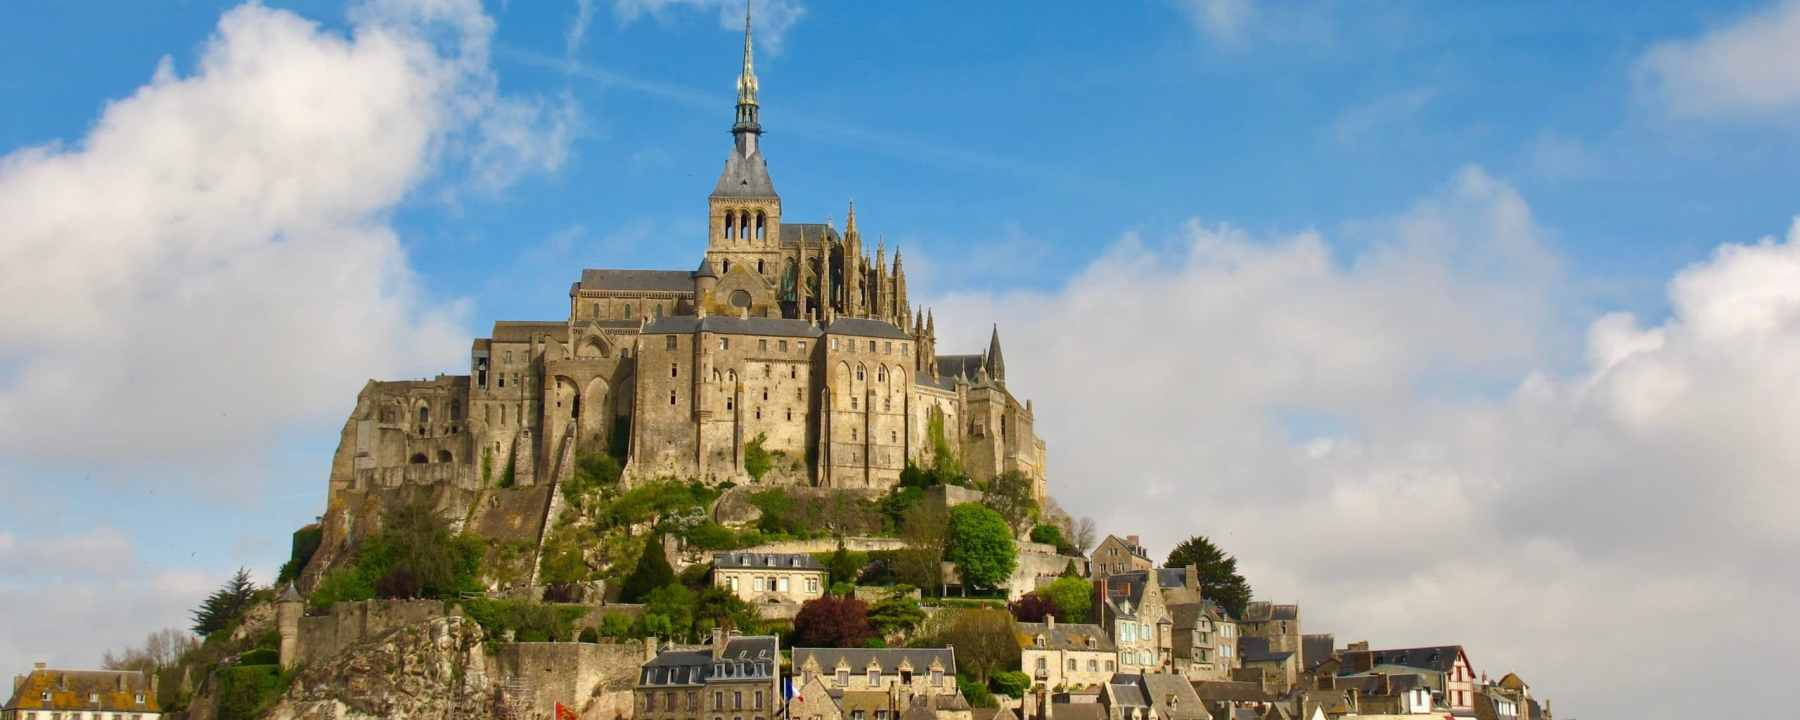 Le Mont St-Michel à marrée basse, en Normandie, France